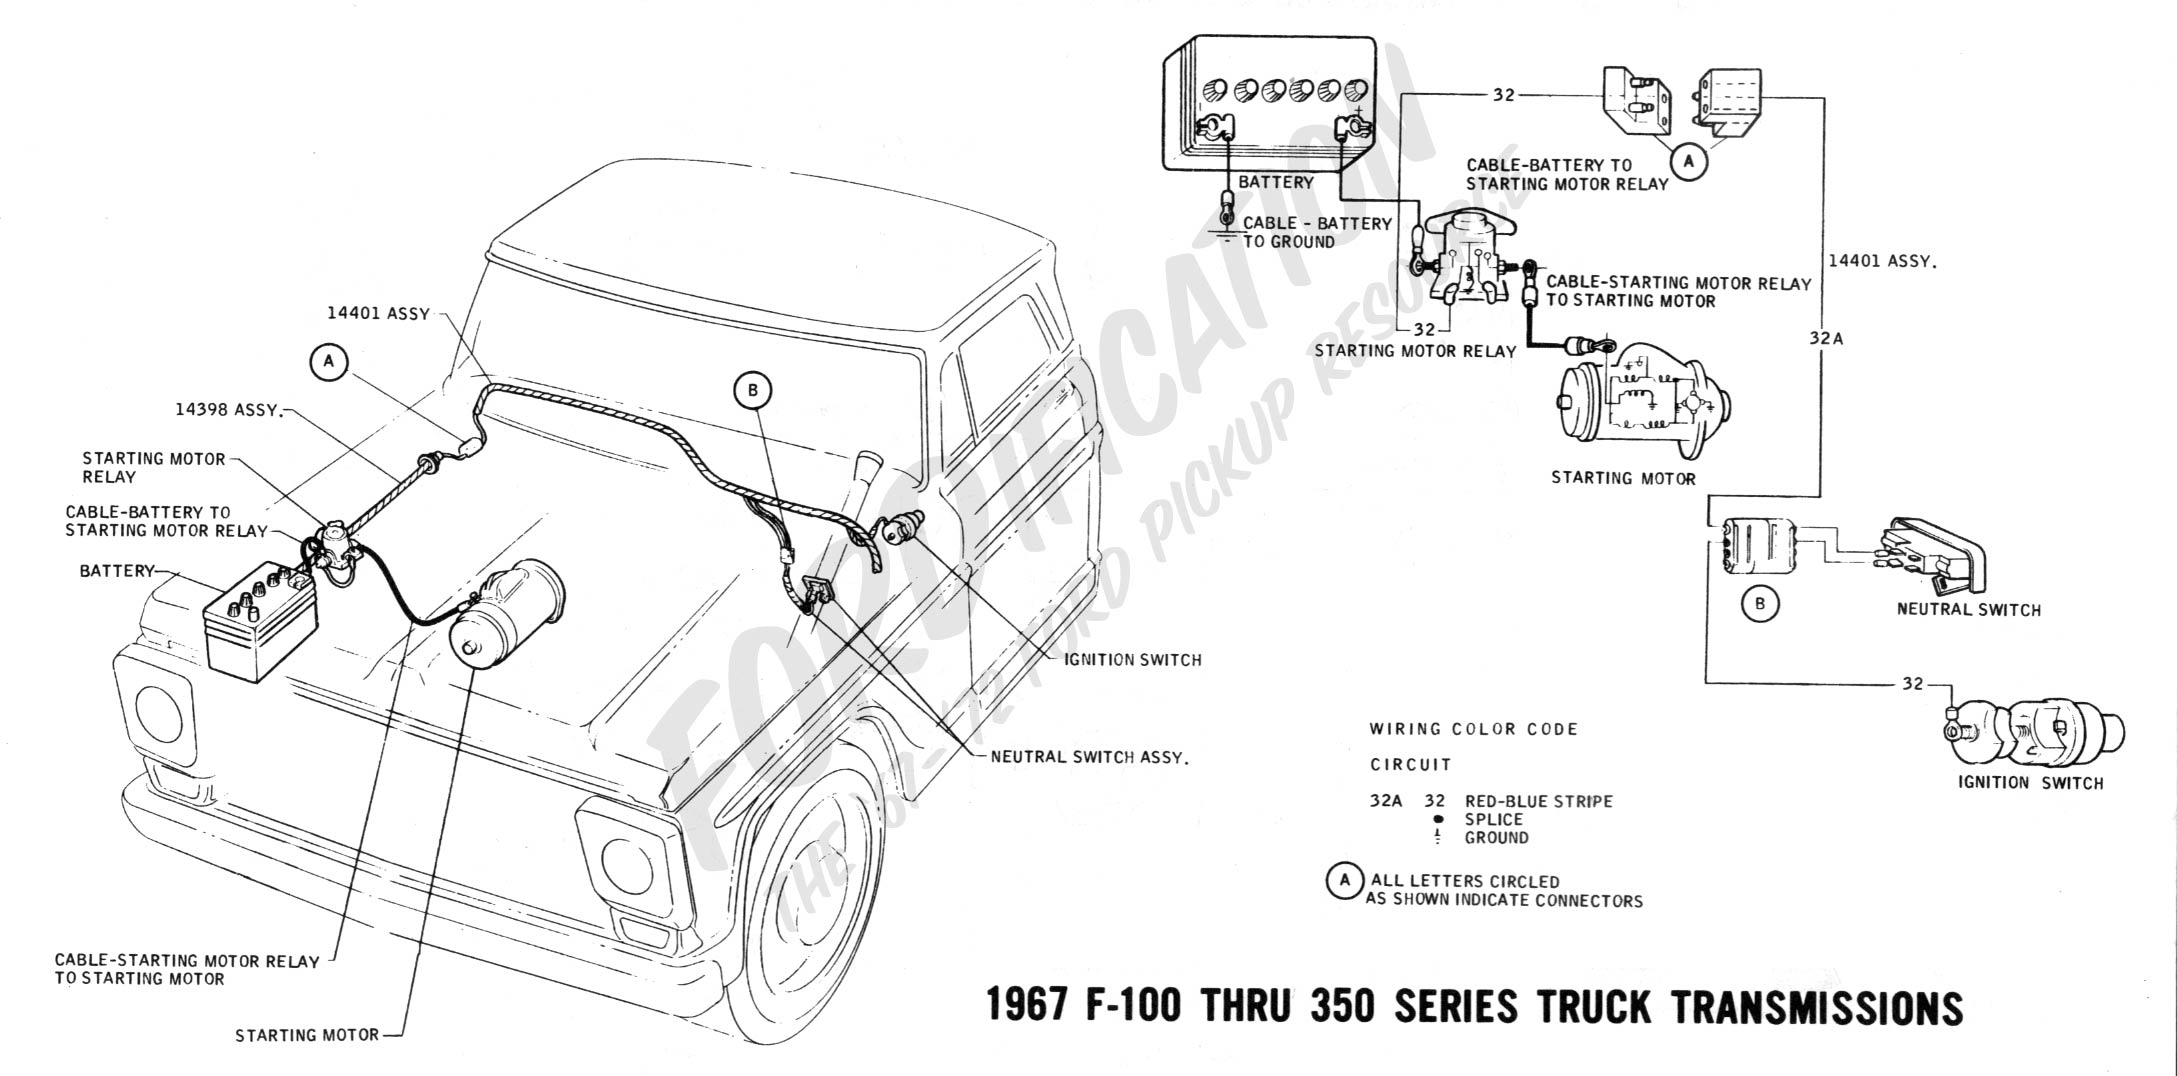 Wiring Harness Drawing For 67 Ford F100 Diagram Libraries Fuse Box 1964 Falcon Librarywiring Online Schematic U2022